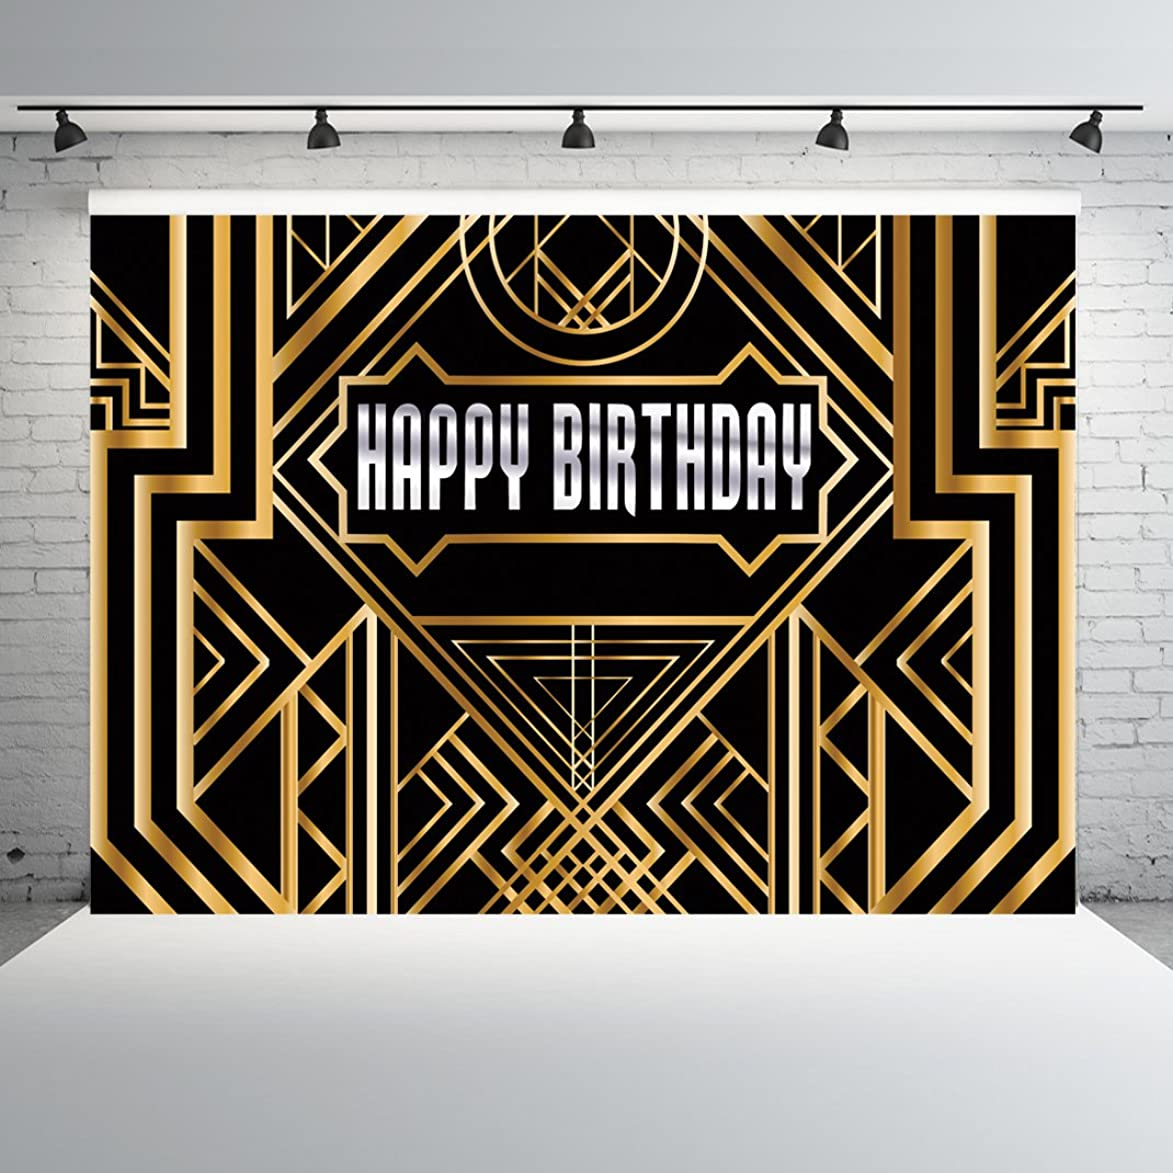 Dudaacvt 8X6ft Black Photography Backdrops Great Gatsby Happy Birthday Golden Abstract Geometric Background Gold Grill Photo Studio Props for Artdeco Q0170806